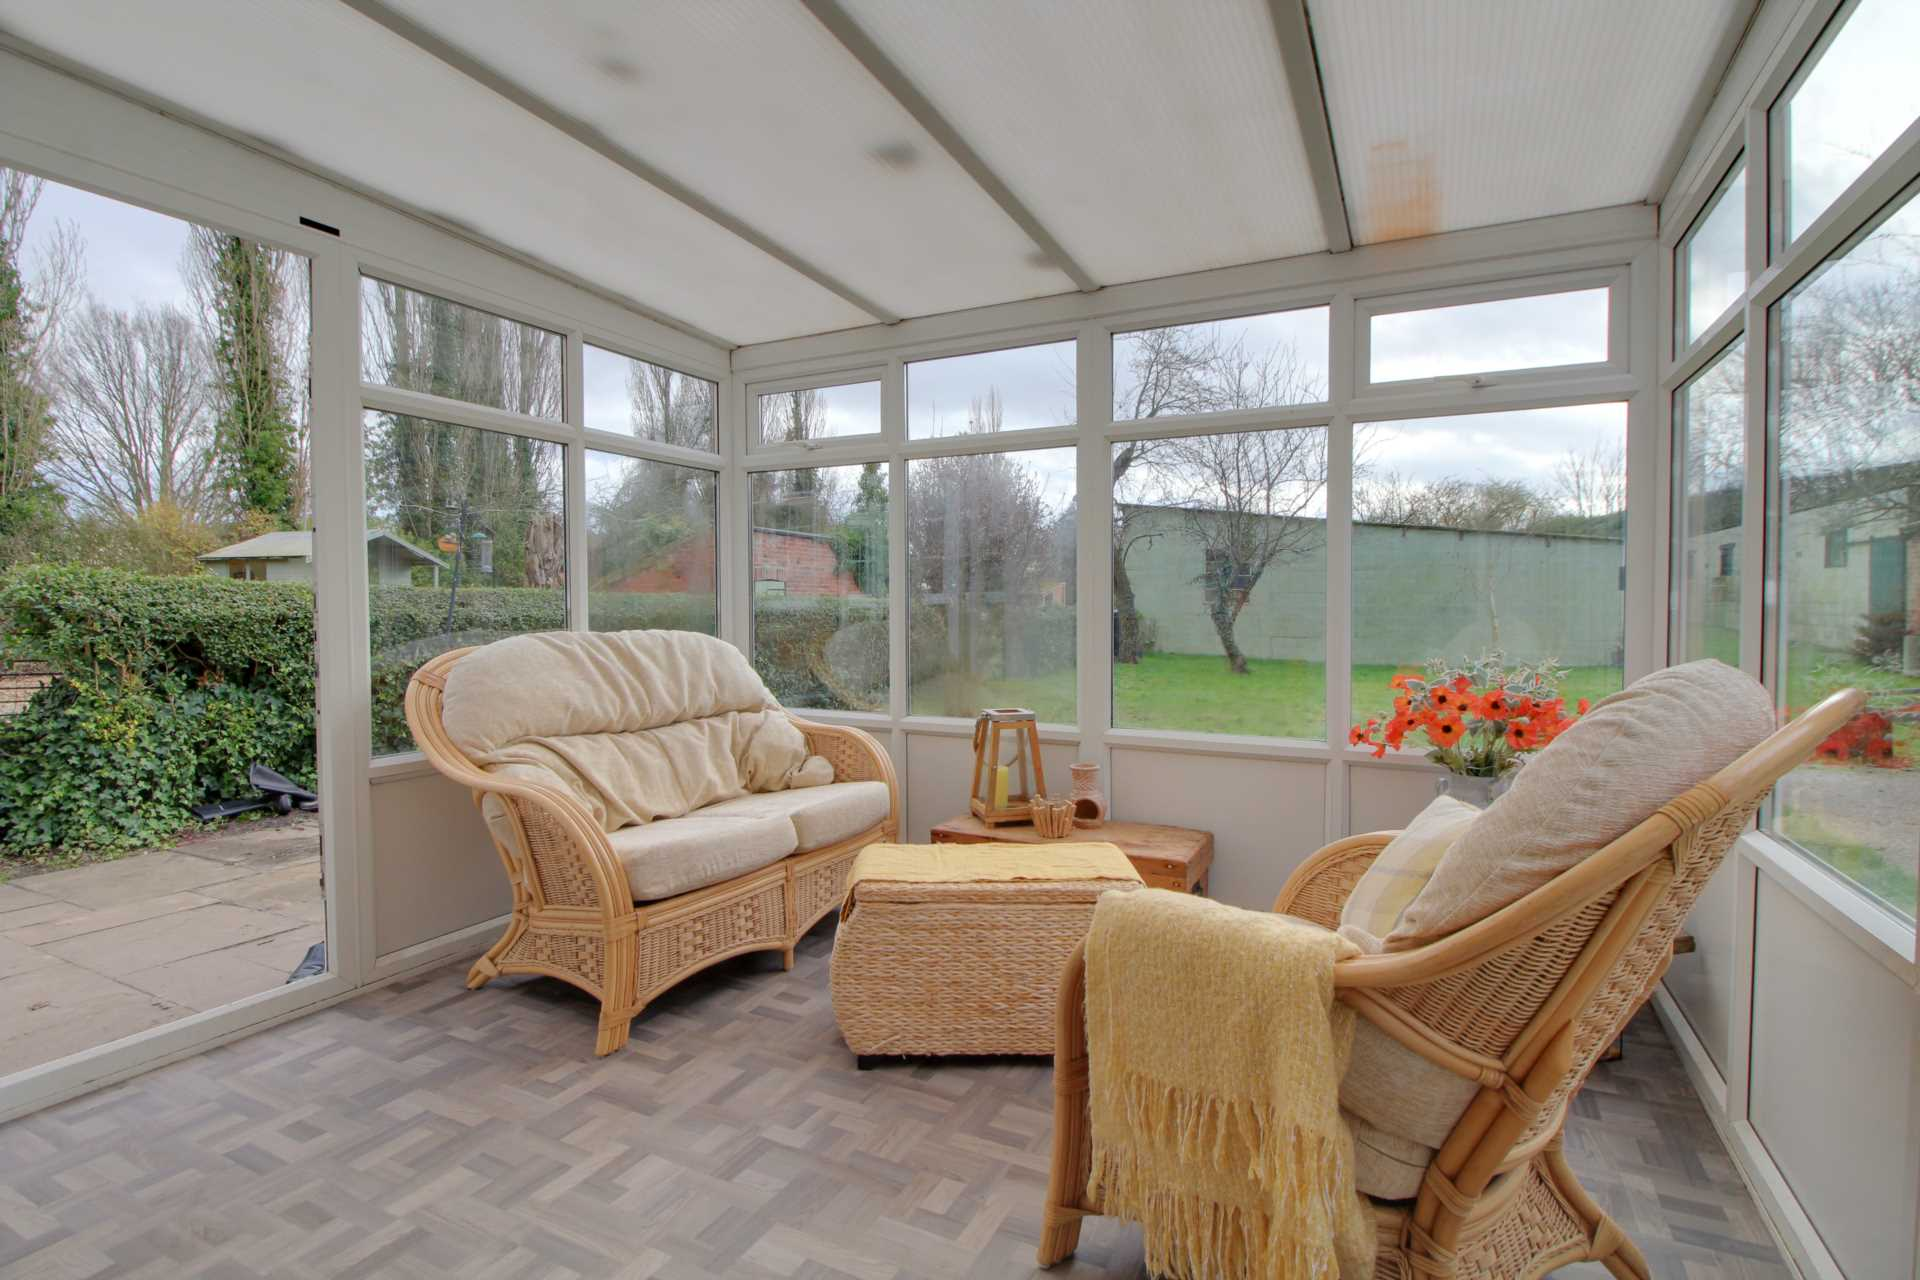 Pleasant Villa, Heapham, Gainsborough - with approx 6 acres sts., Image 5